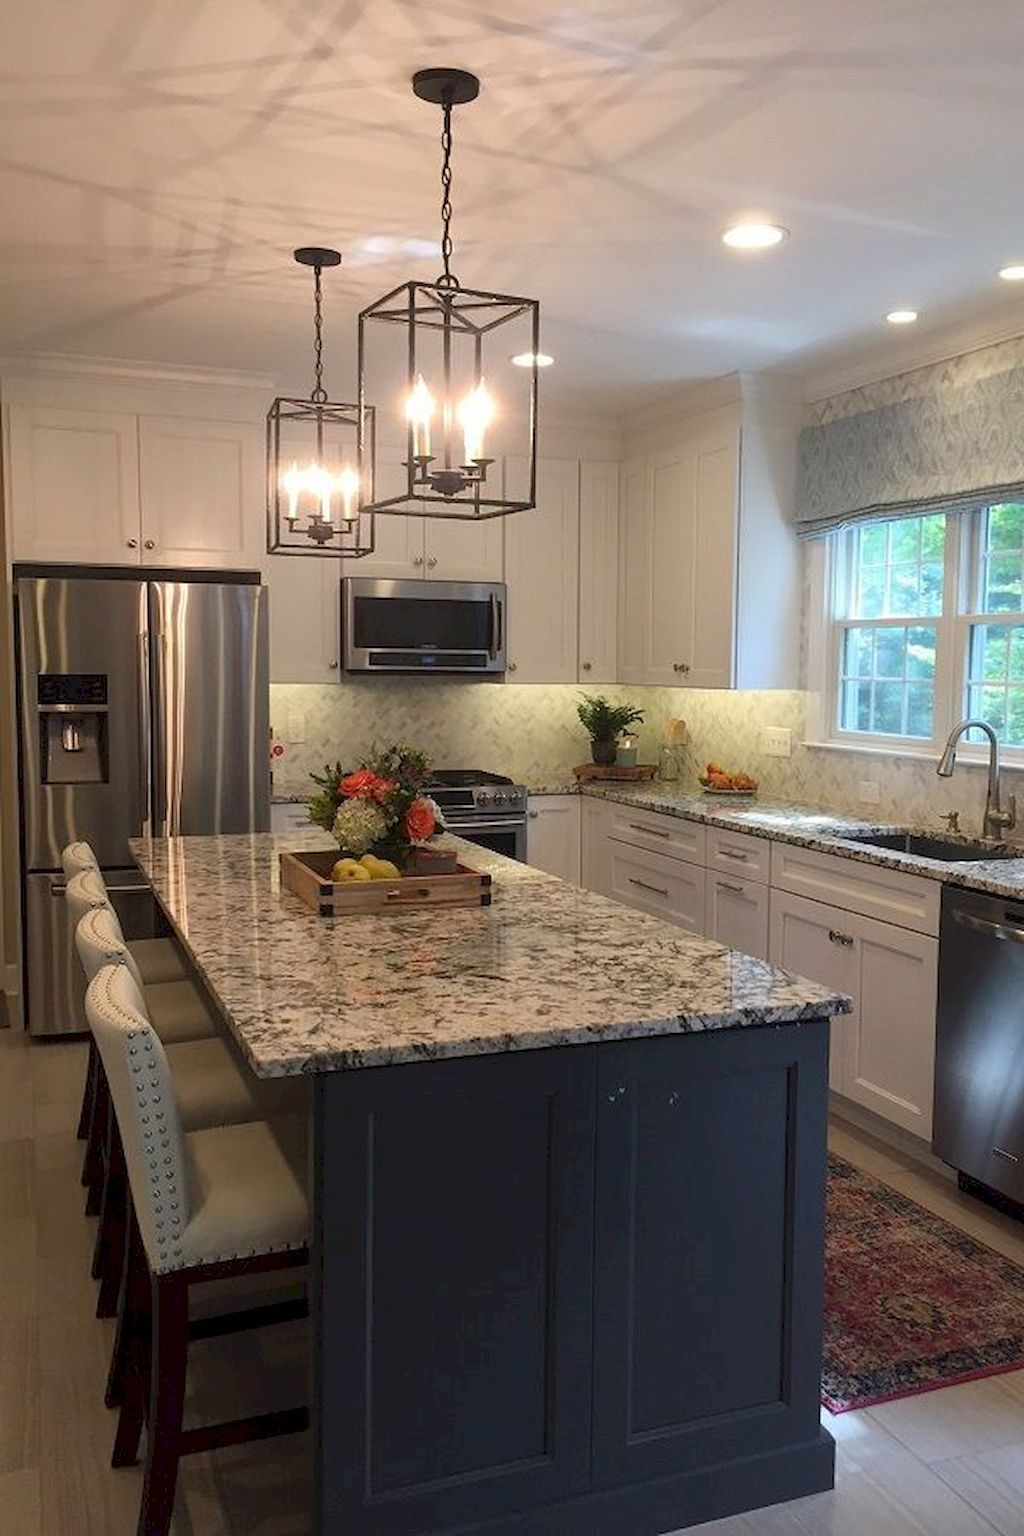 Choose Best Color For Small Kitchen Remodel Rustic Kitchen